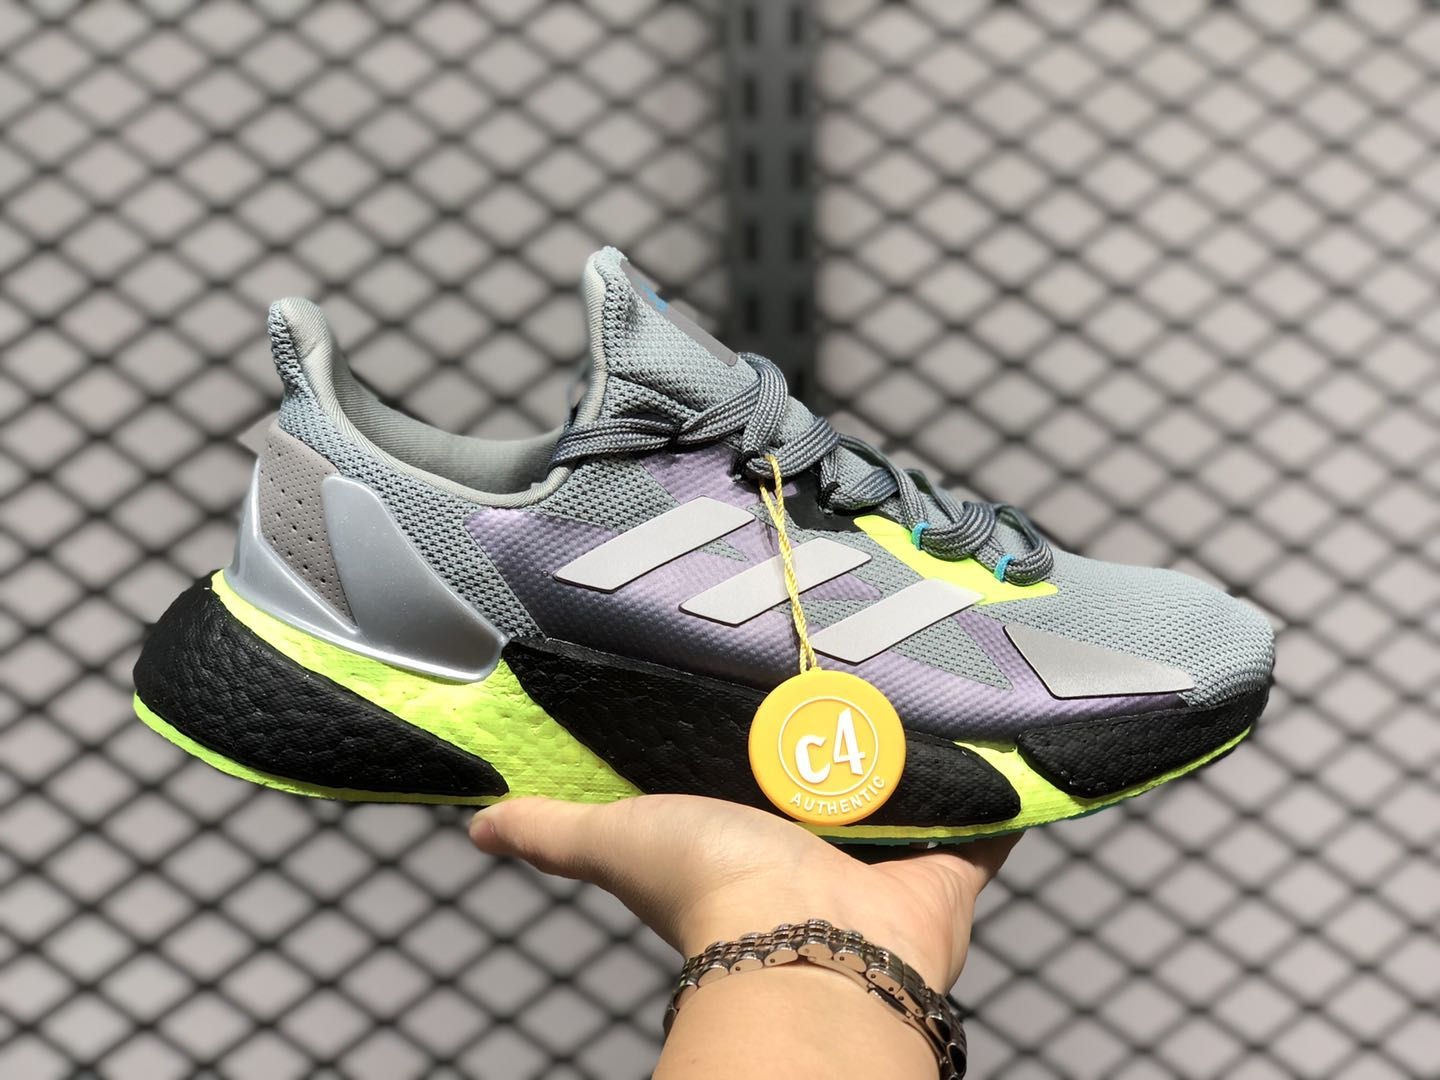 Mutilar explosión lana  Adidas Boost X9000L4 Cool Grey/Volt/Yellow For Sale FW8385 | Evesham-nj